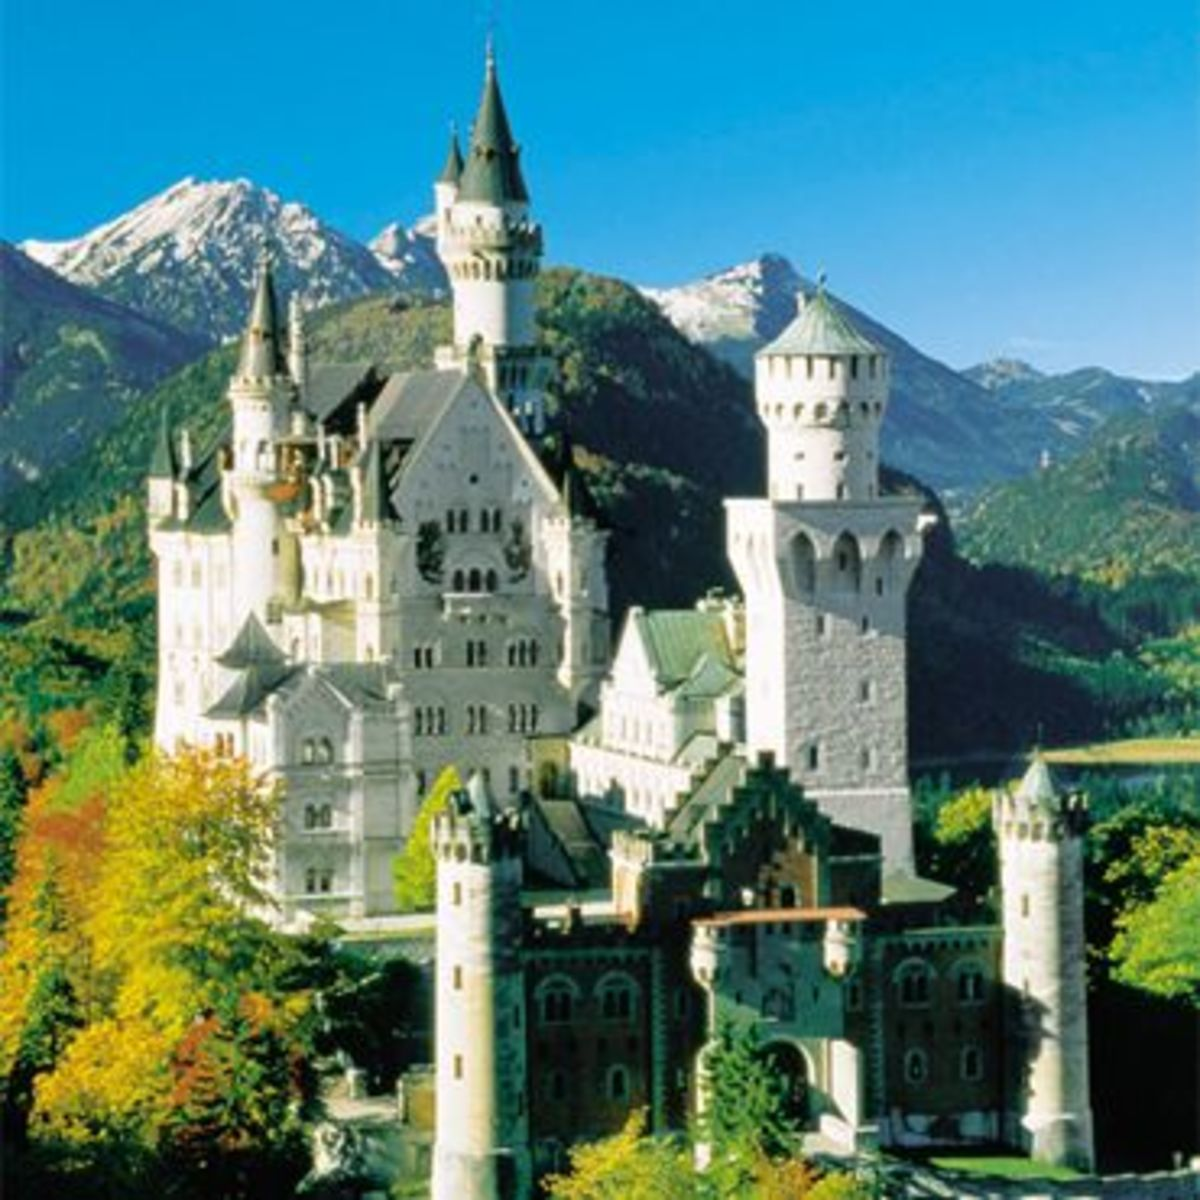 This castle is located in Germany.